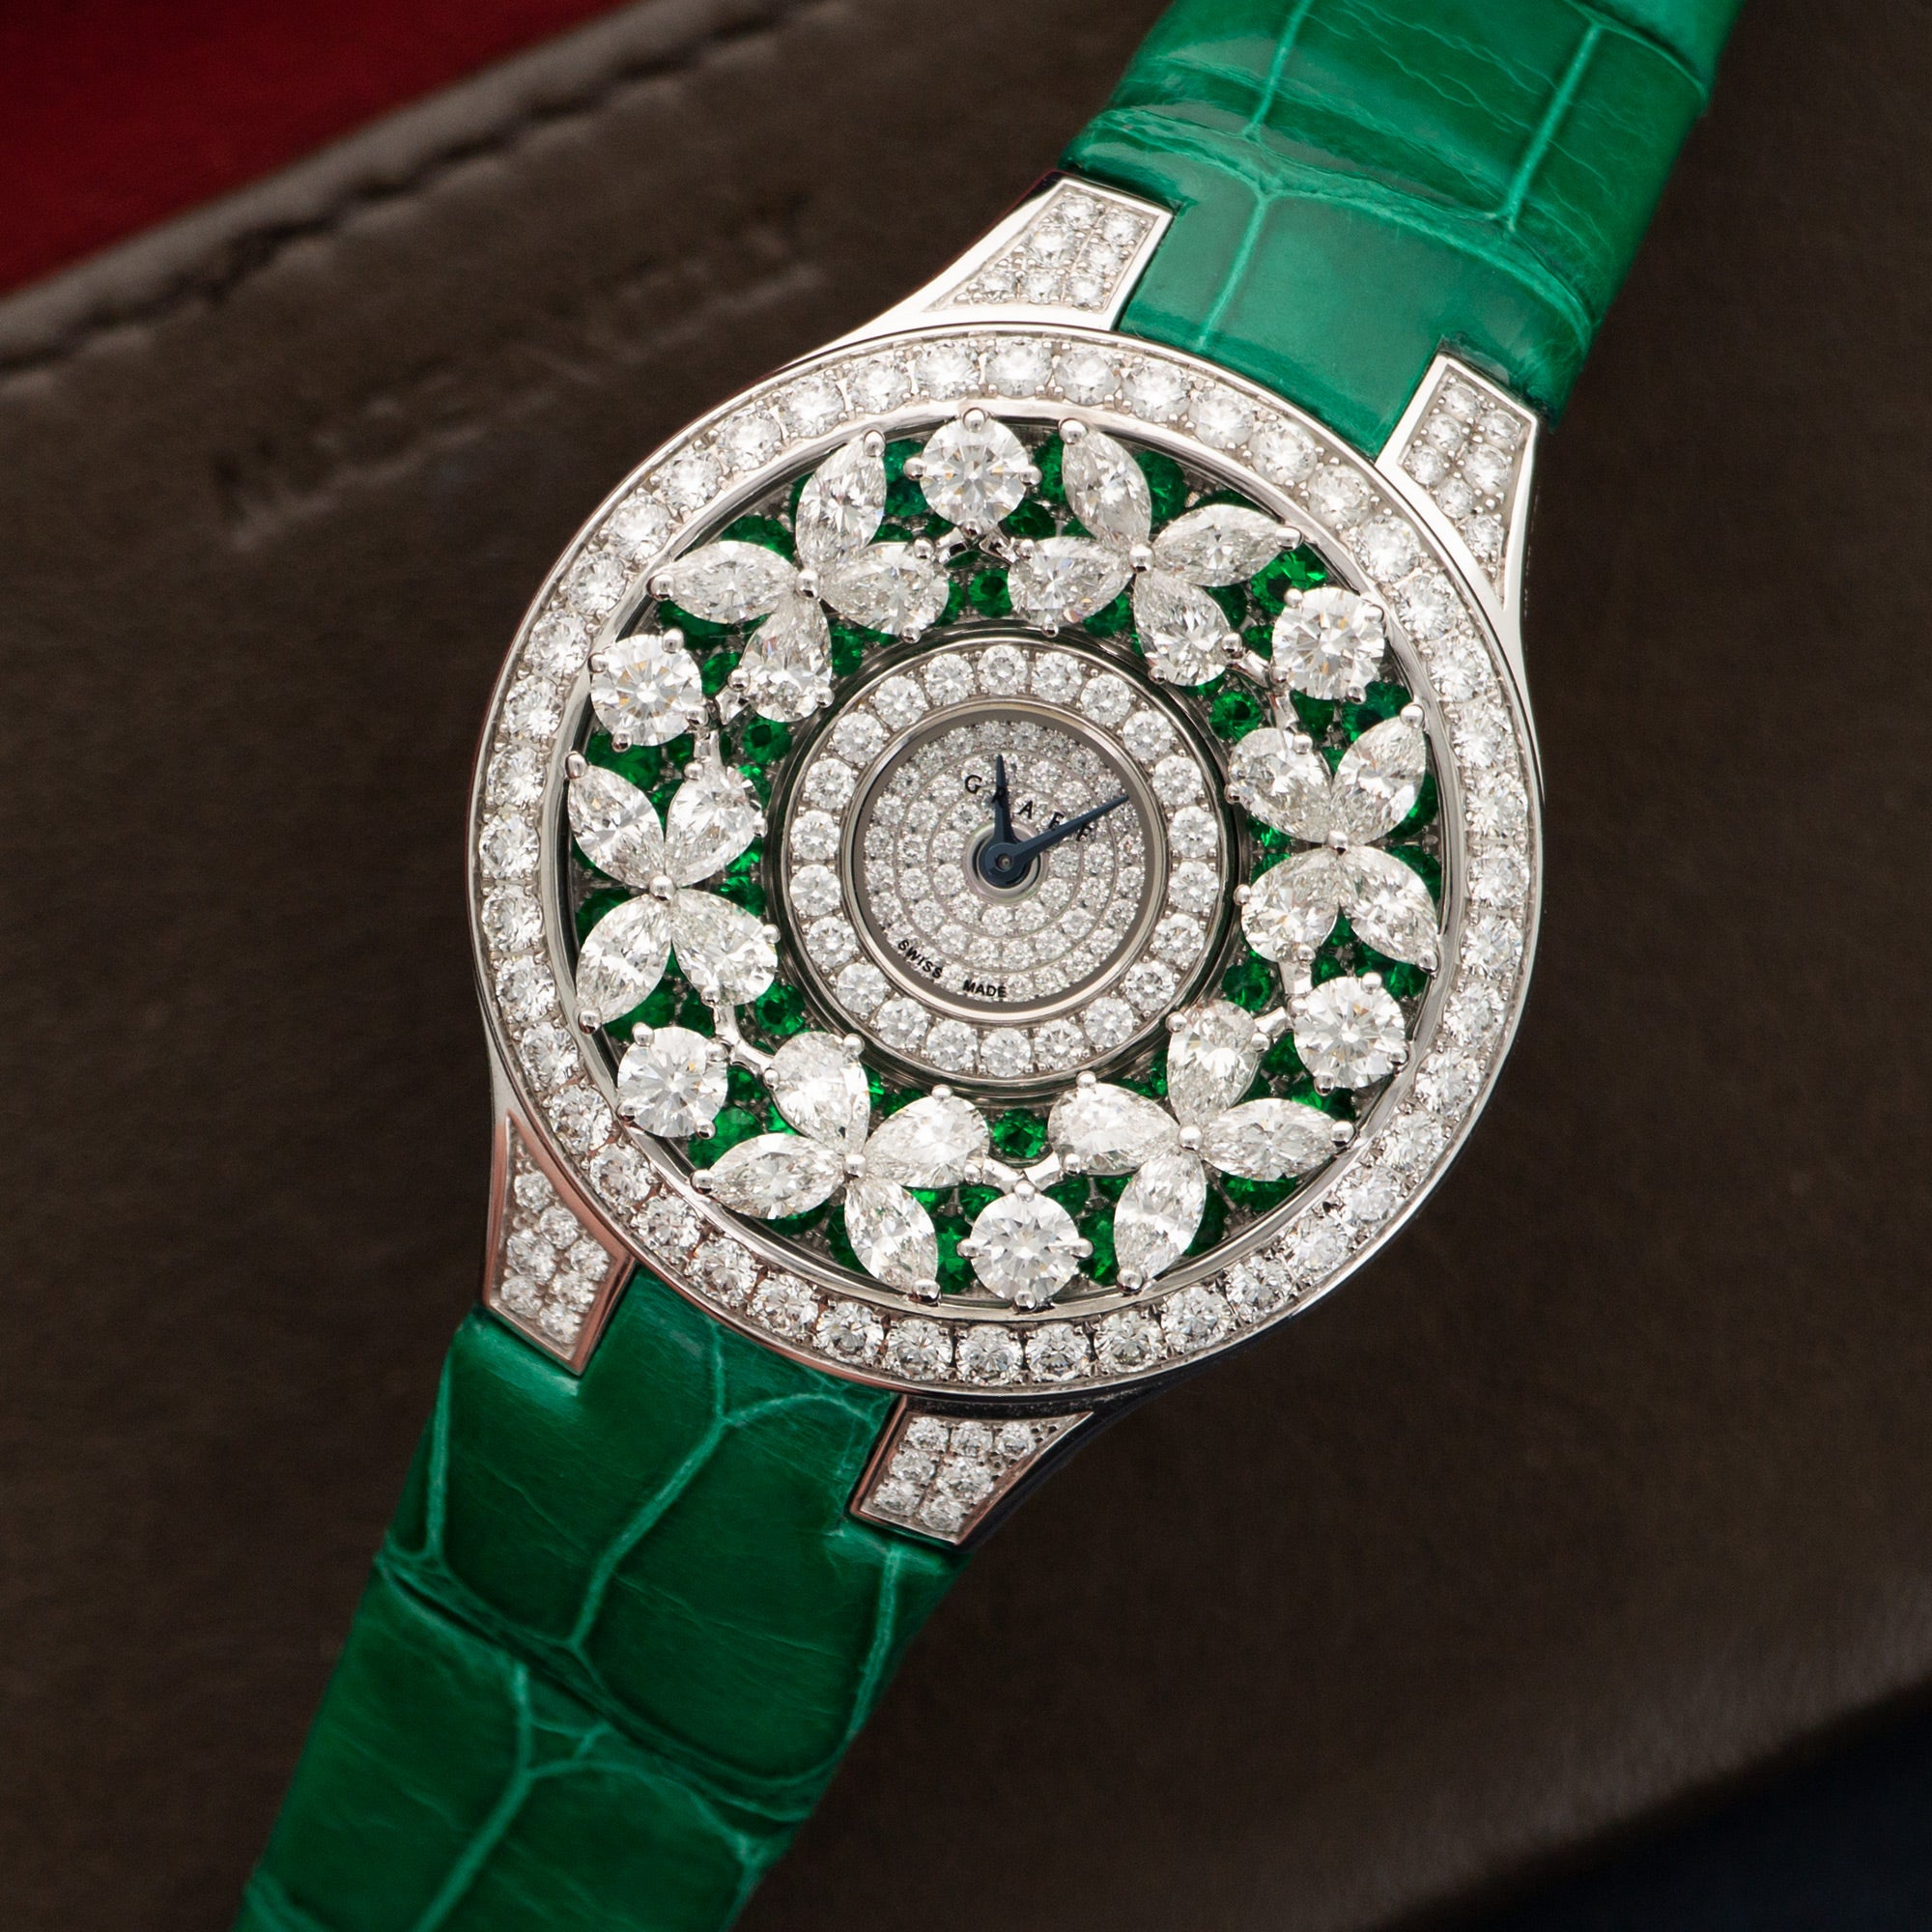 Graff Butterfly BF3WGDE 18k WG  Mint Ladies 18k WG Emeralds and Diamonds 32mm Quartz Current Crocodile Original Box and Certificate